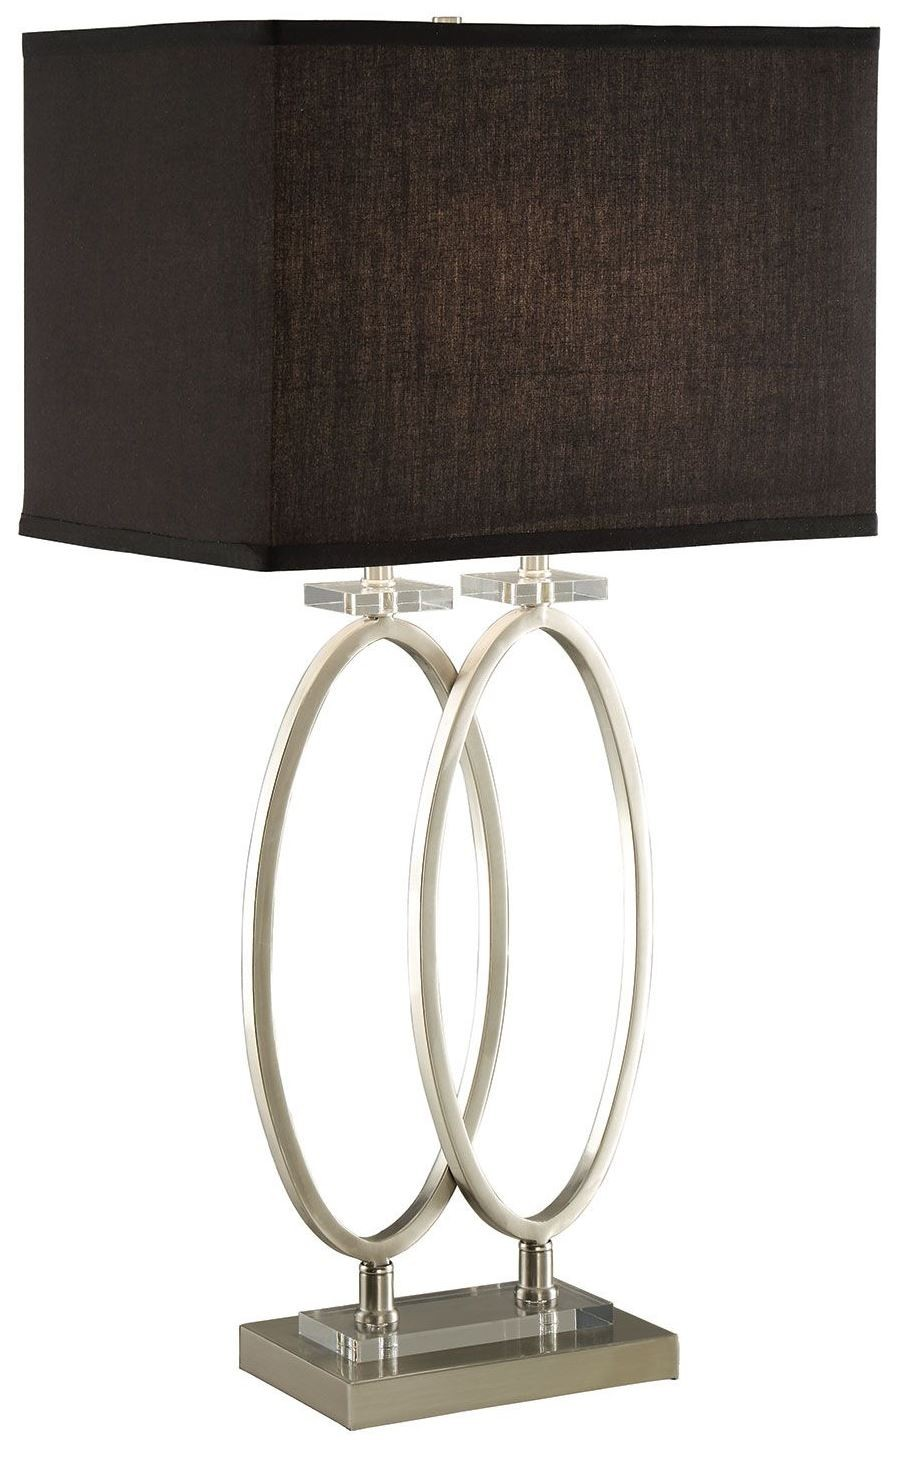 brushed nickel table lamp from coaster 901662 coleman furniture. Black Bedroom Furniture Sets. Home Design Ideas